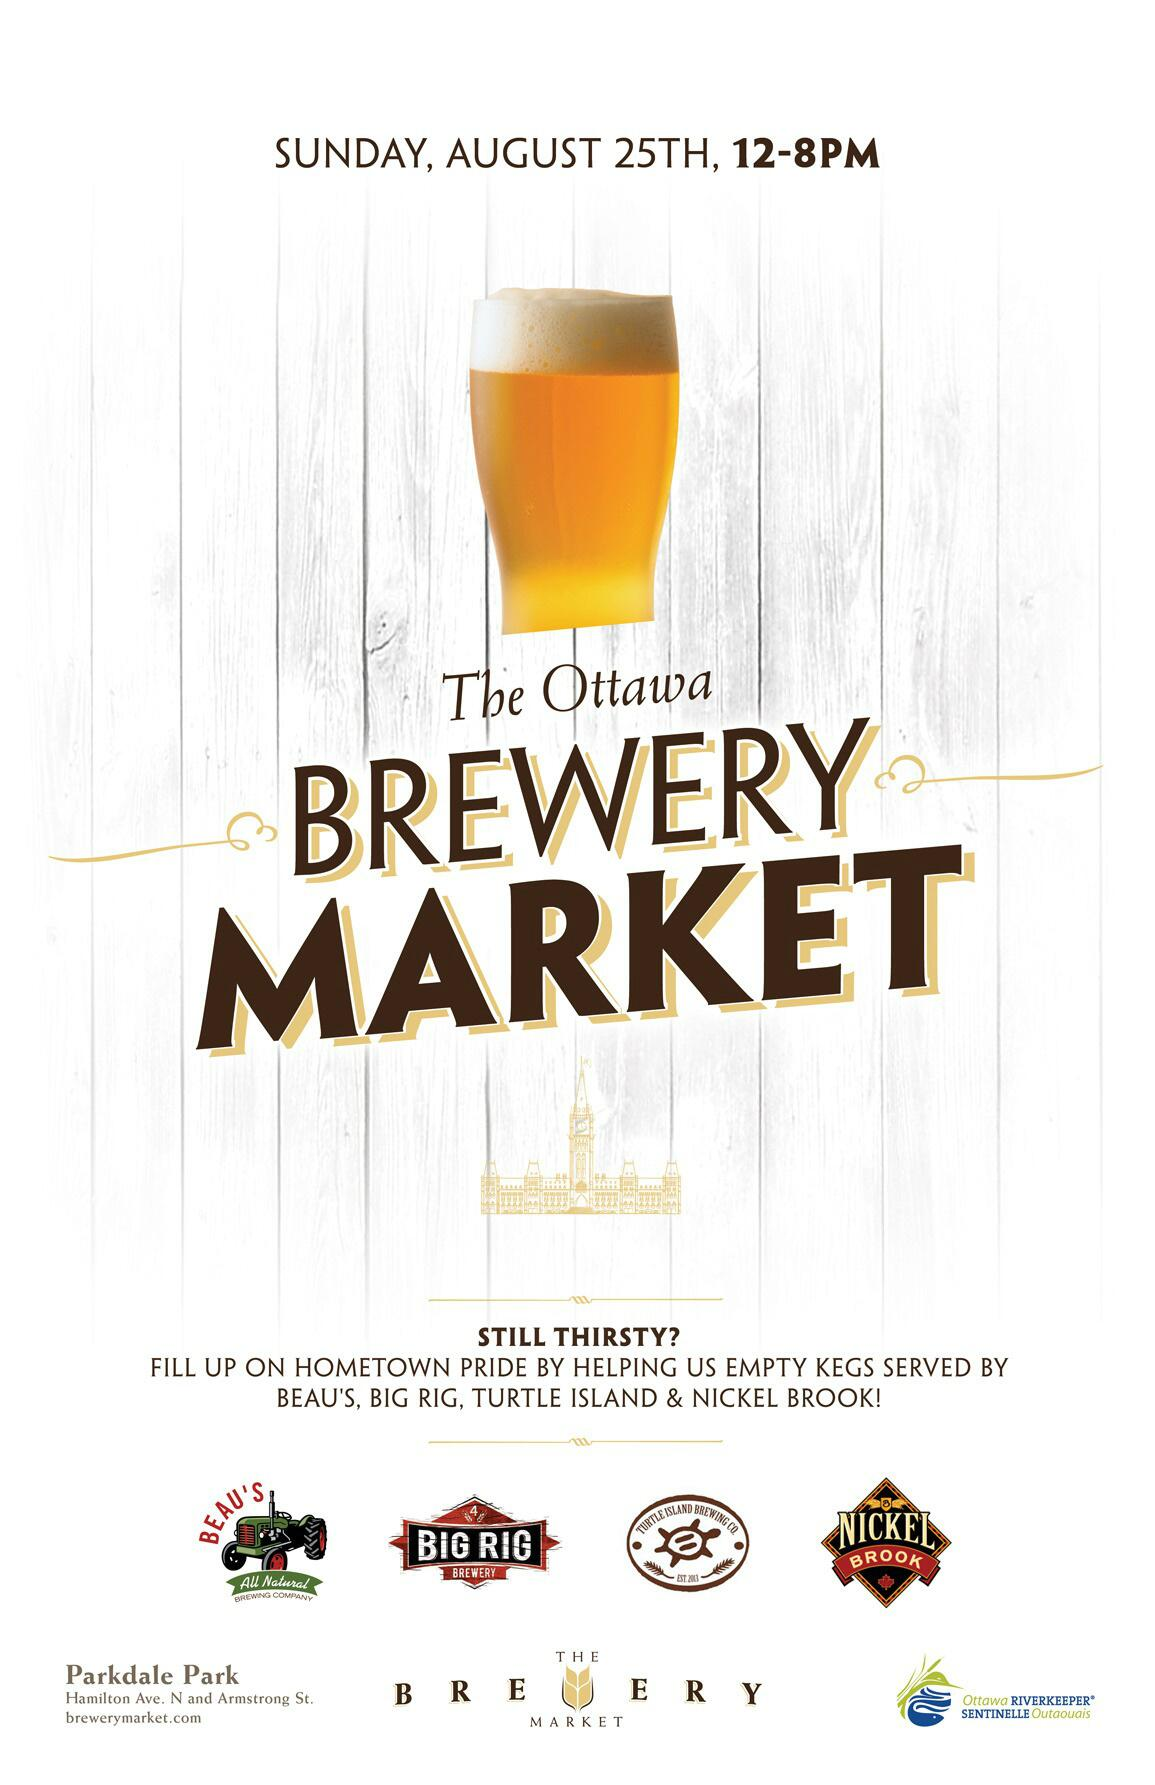 Which is to say, The Brewery Market returns Sunday, Aug 25. (Hey, that's this weekend!) http://t.co/KYSR1myuQT